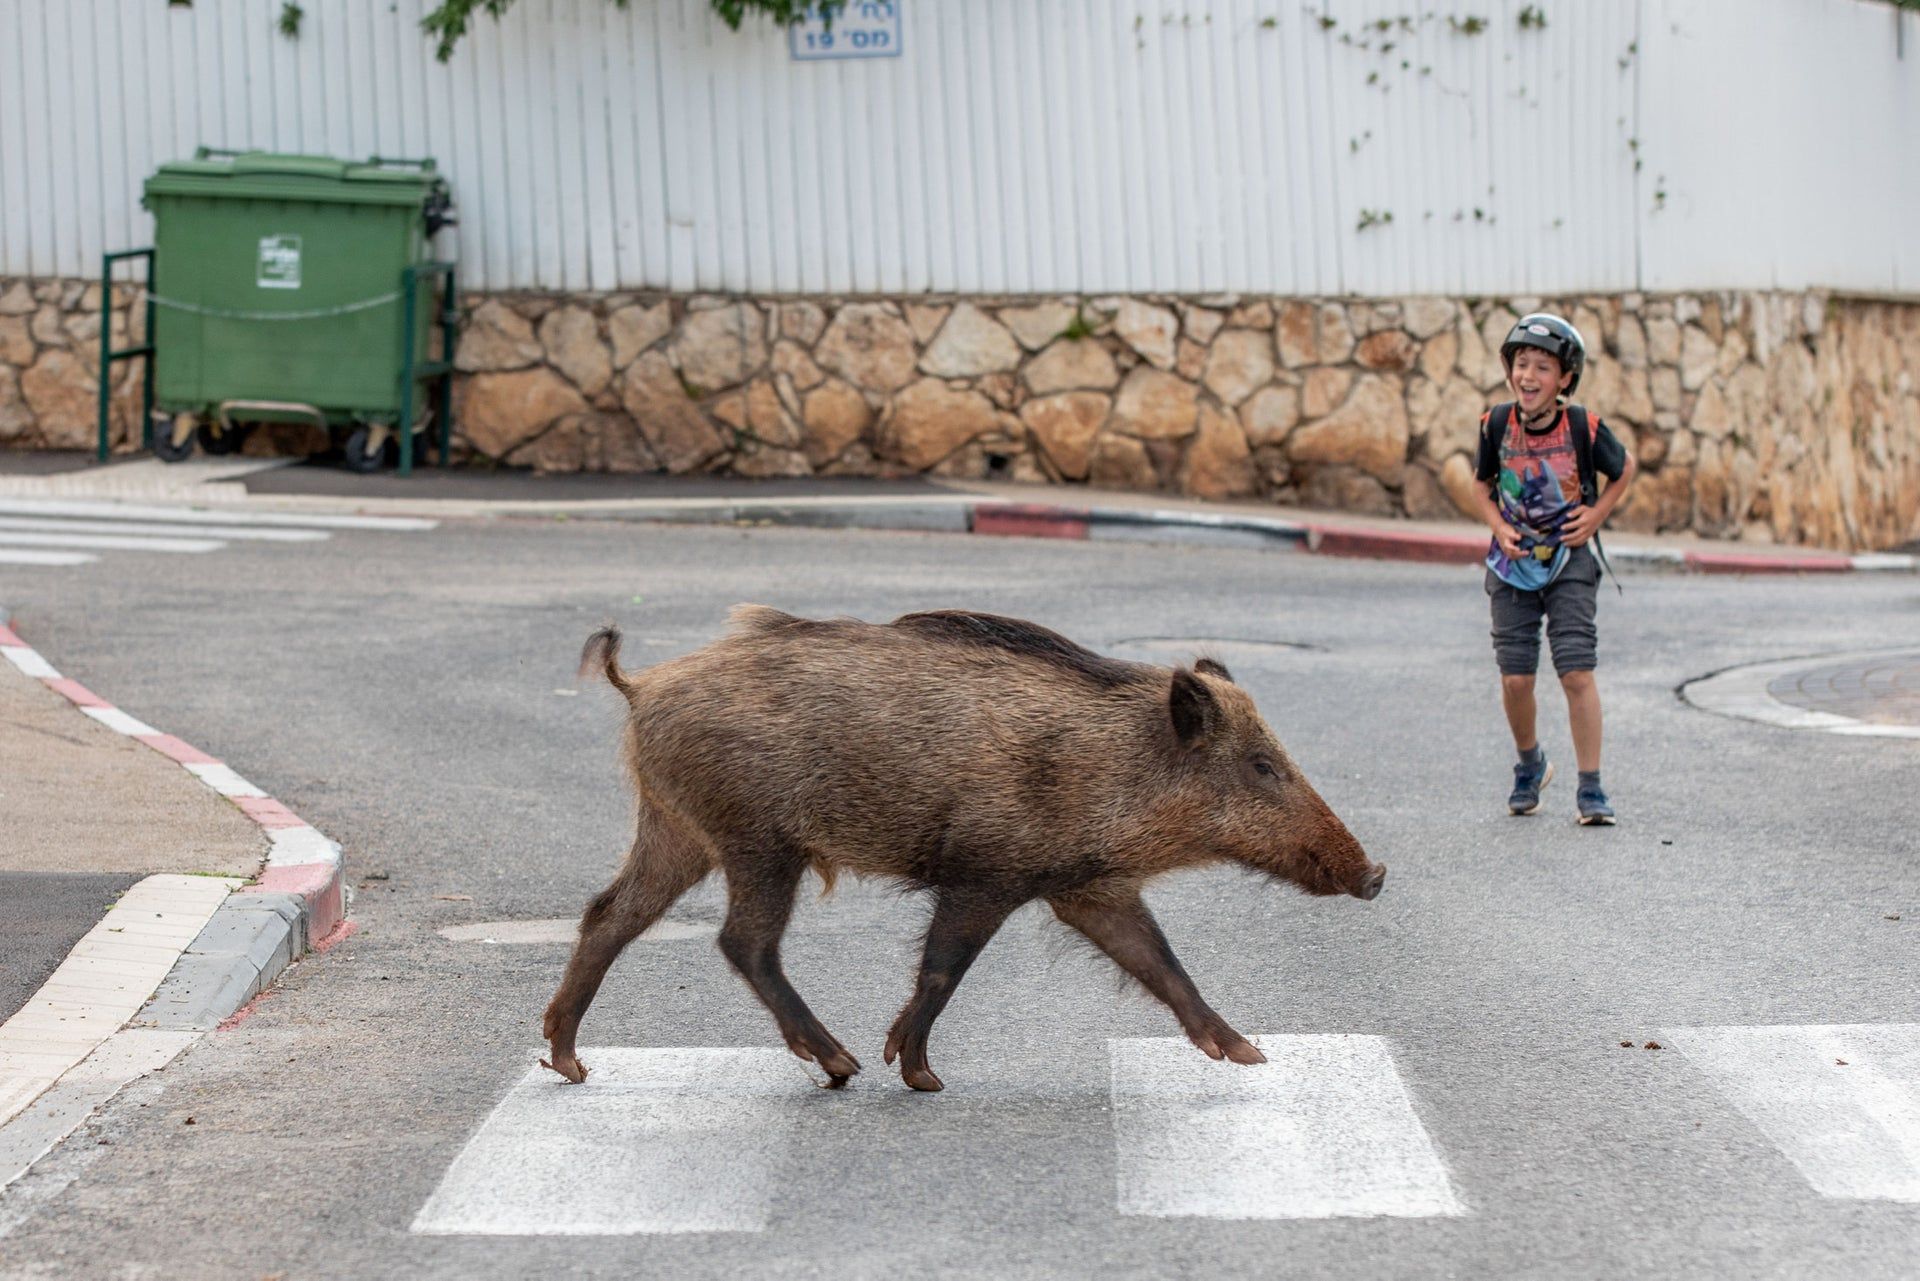 A child is amused at a wild boar crossing a road in Haifa, northern Israel, April 13, 2020.